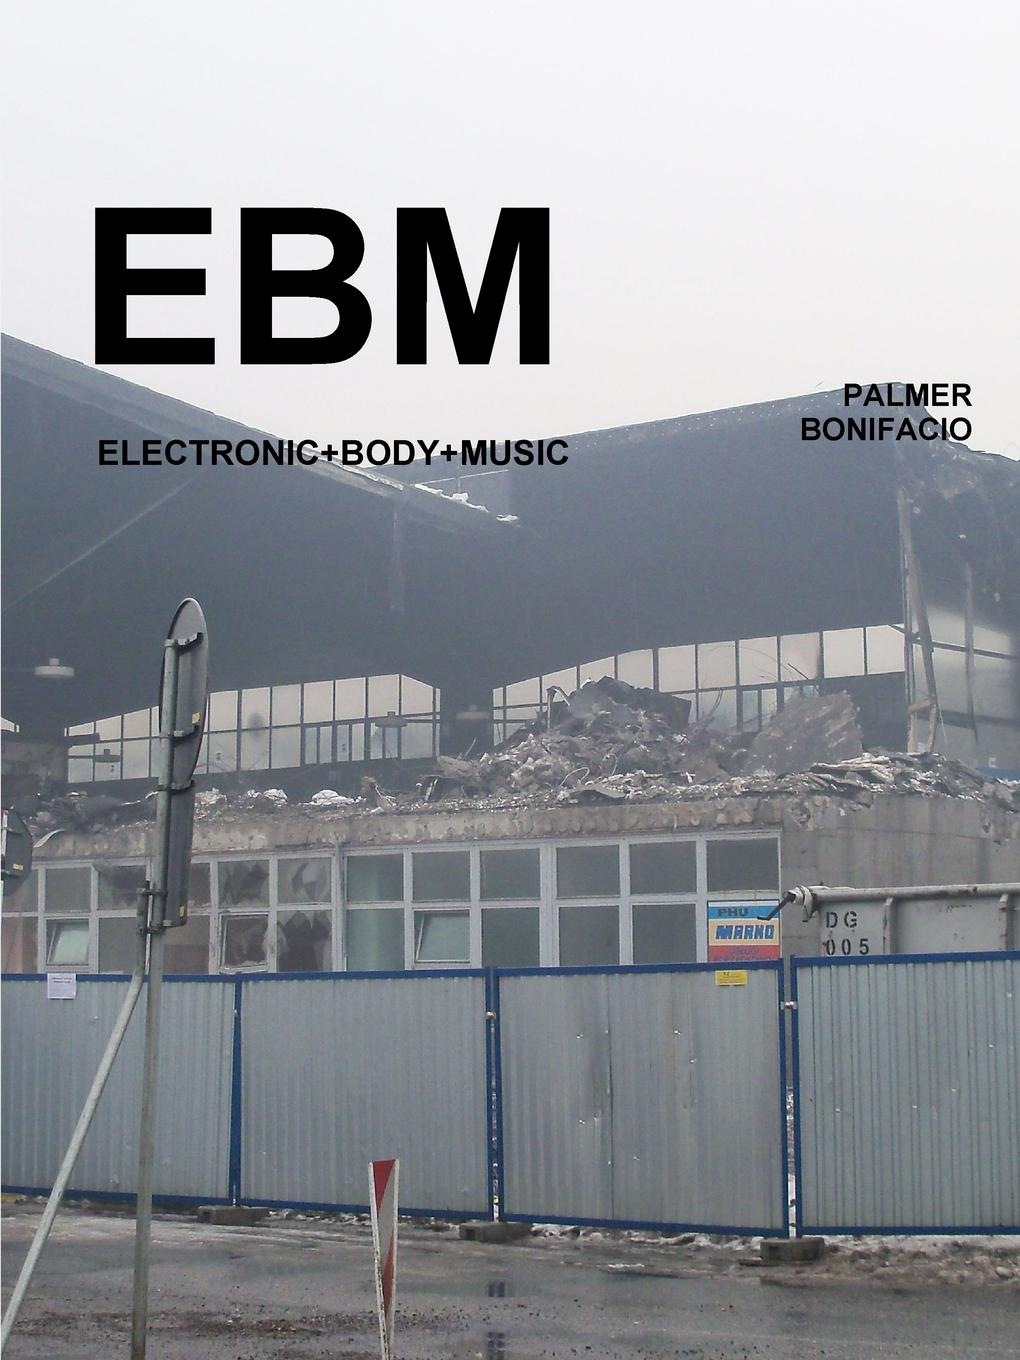 Palmer Bonifacio EBM. Electronic Body Music music and monarchy